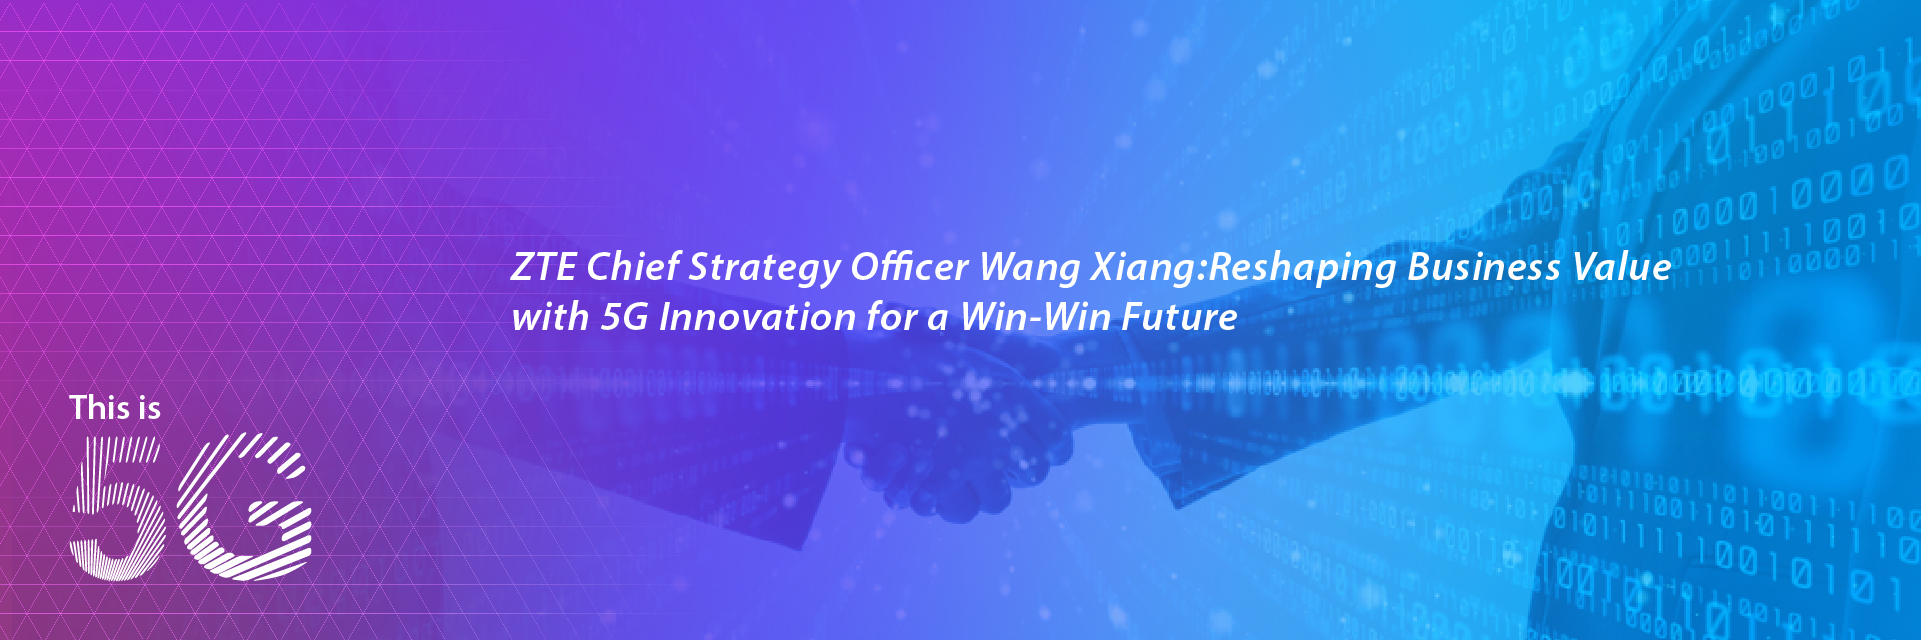 ZTE Chief Strategy Officer Wang Xiang: Reshaping Business Value with 5G Innovation for a Win-Win Future